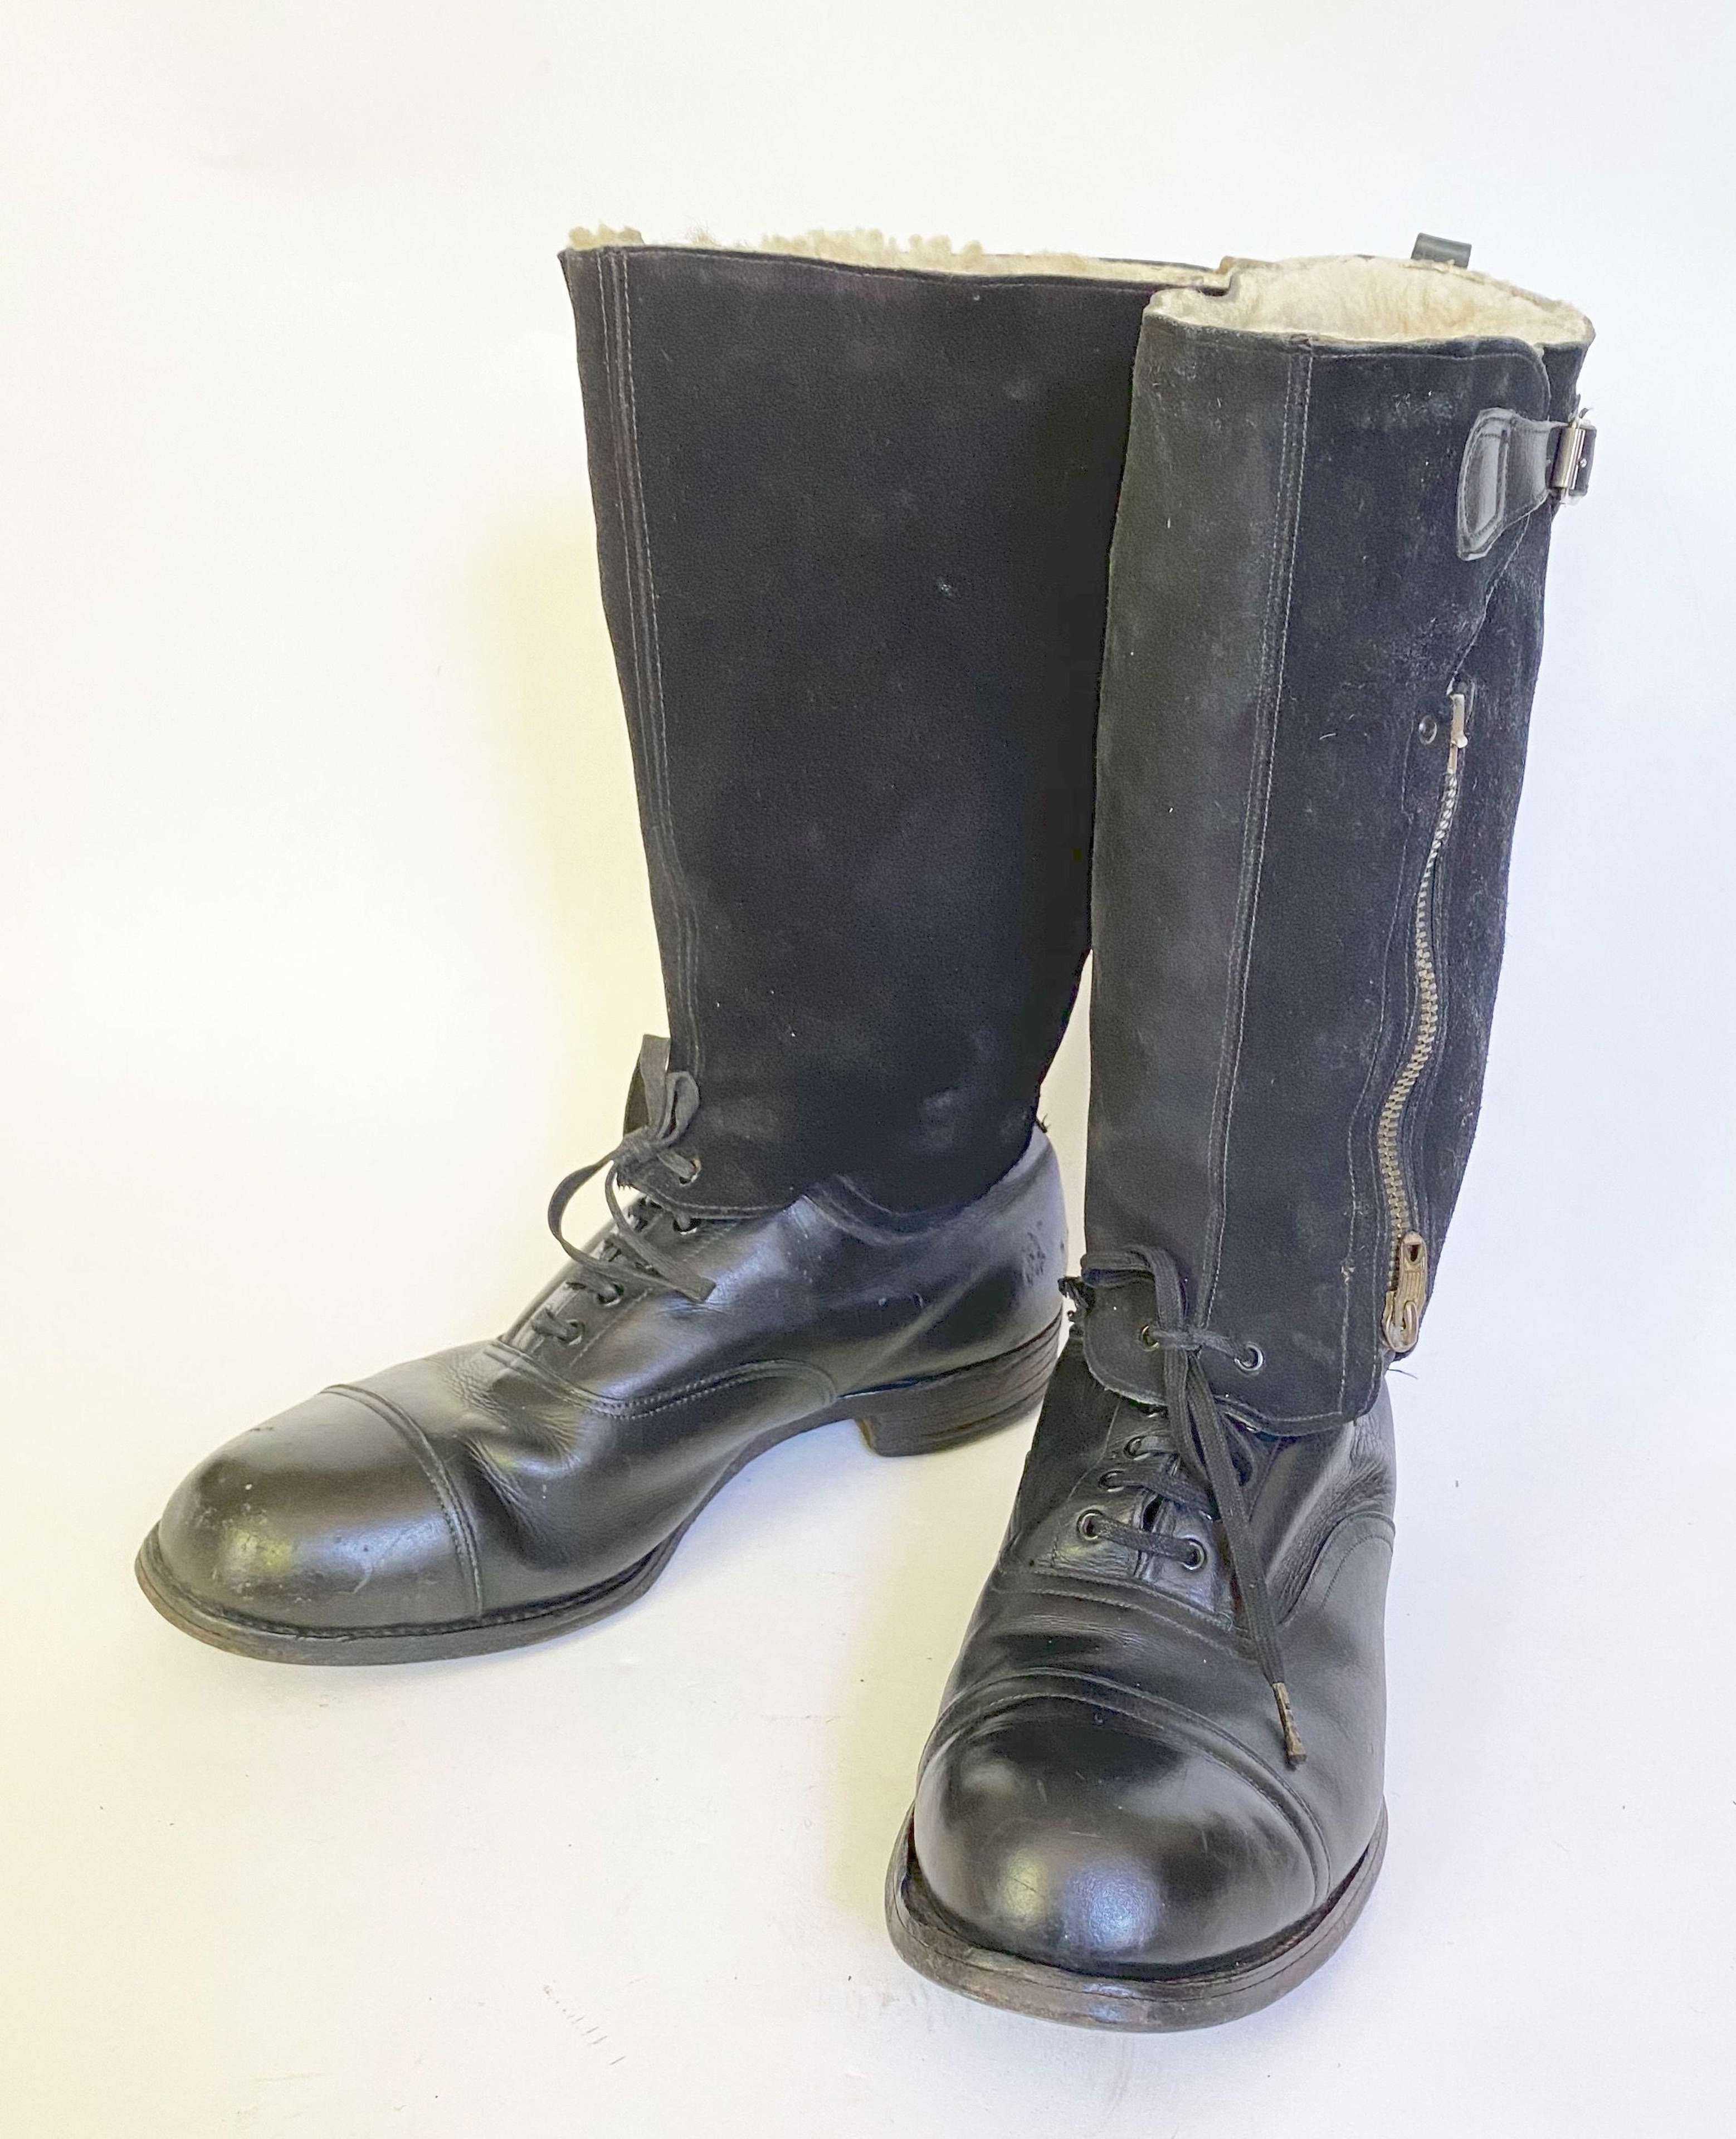 WW2 RAF Aircrew 1943 Pattern Escape Boots Size 9.